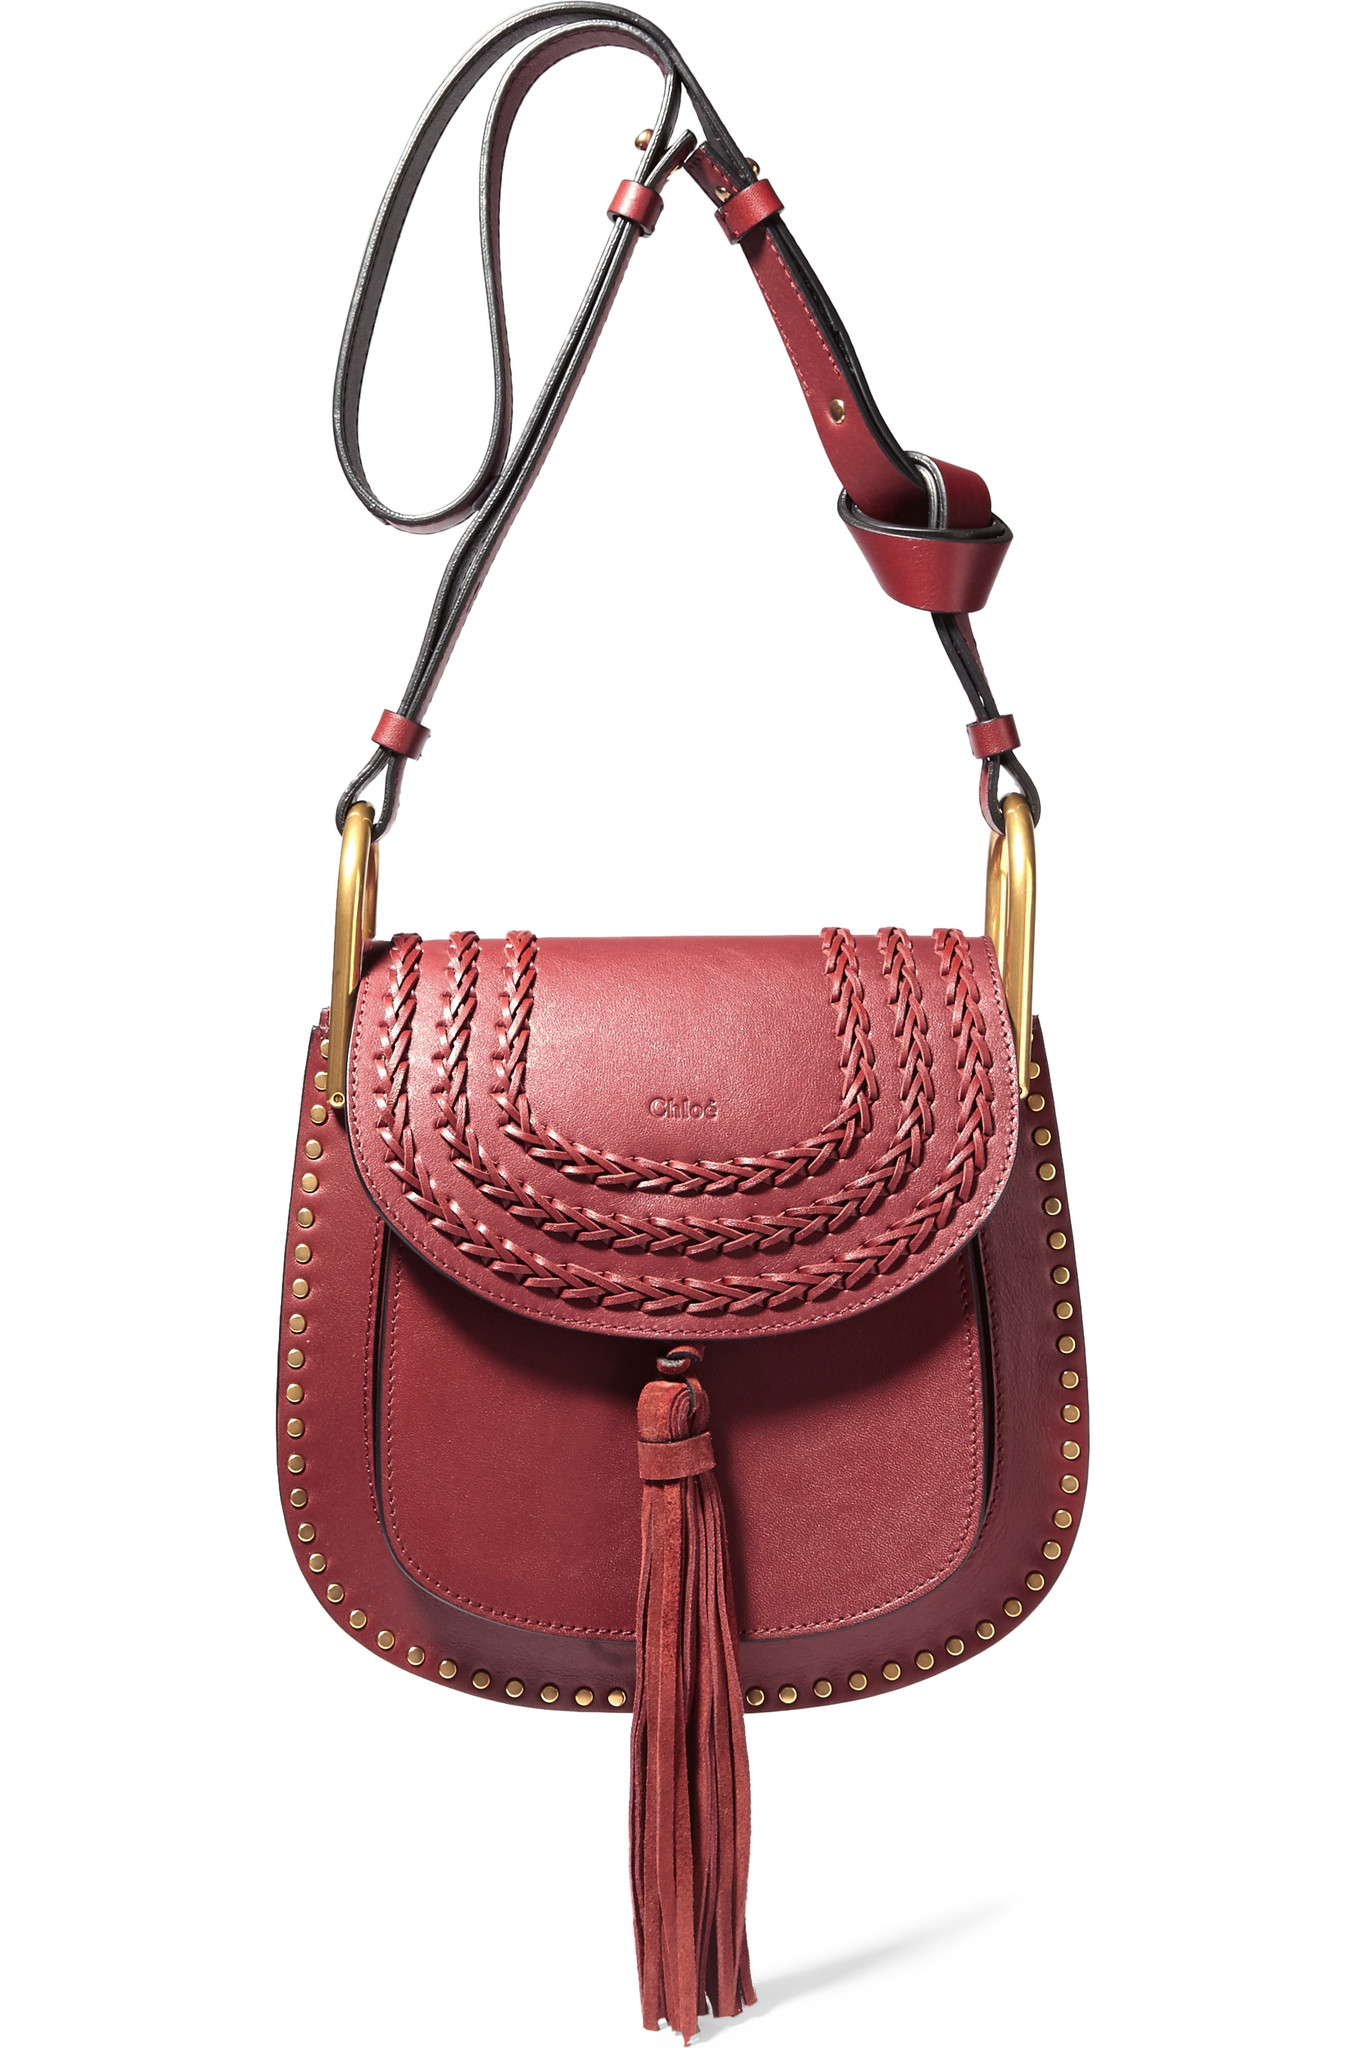 lyst chlo hudson small whipstitched leather shoulder bag in red. Black Bedroom Furniture Sets. Home Design Ideas